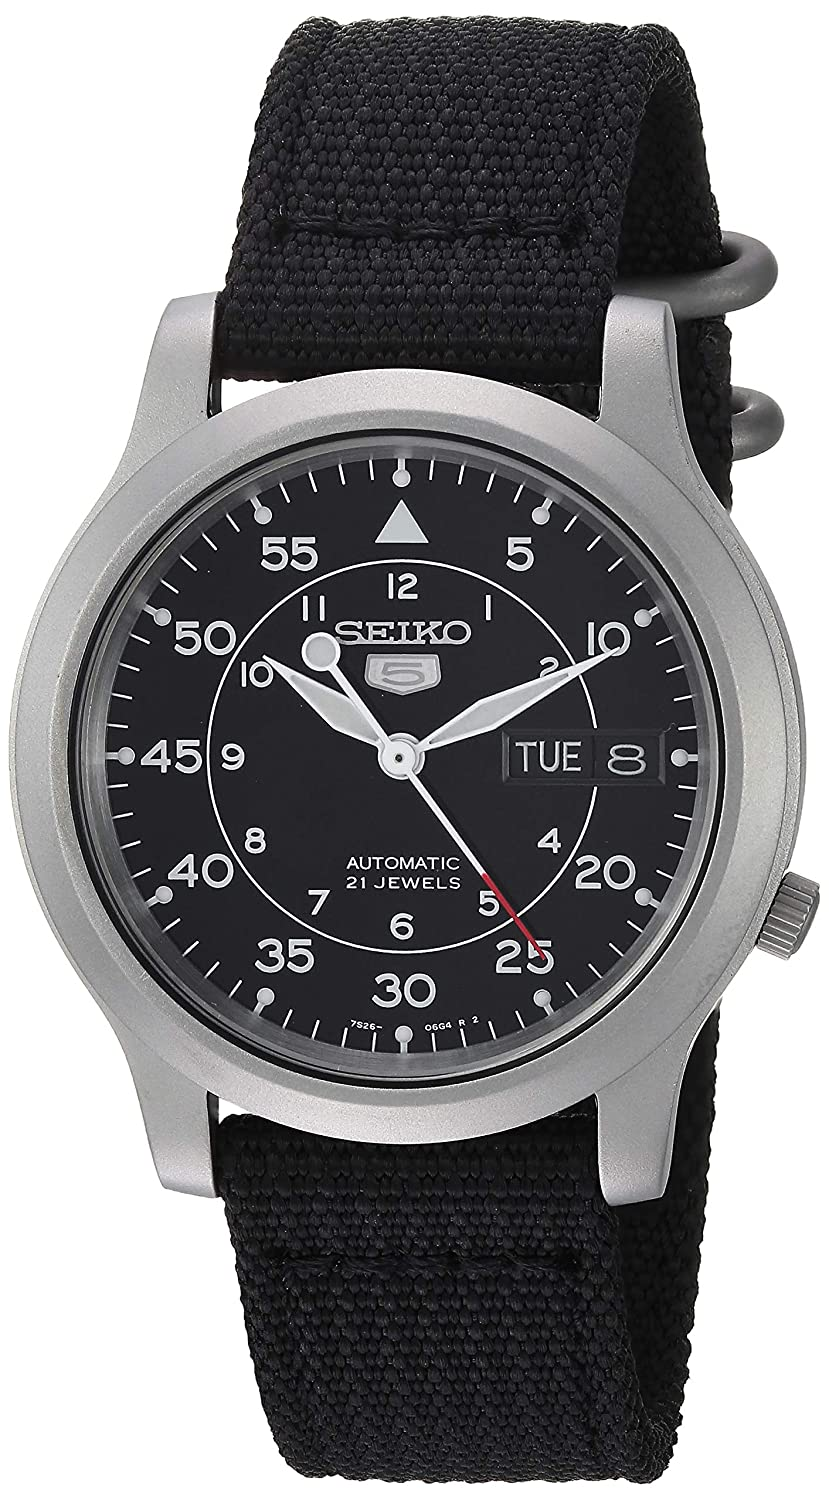 Seiko 5 Snk809 Snk809k2 Army Style Automatic 21 Jewel Men Watch Black Nylon Band Watches, Parts & Accessories Wristwatches